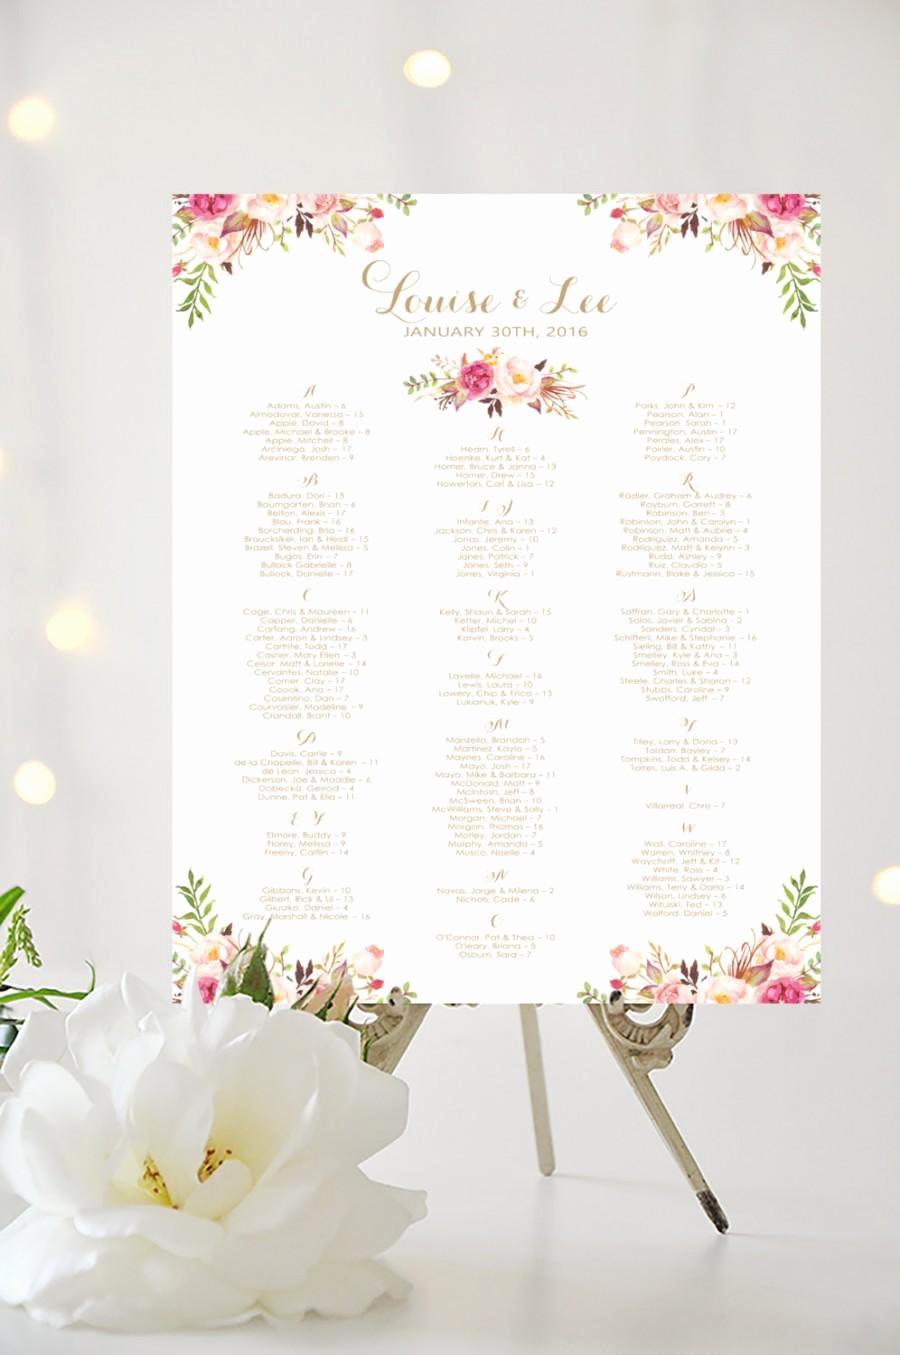 Wedding Seating Chart Poster Template Unique Wedding Seating Chart Alphabetical Poster